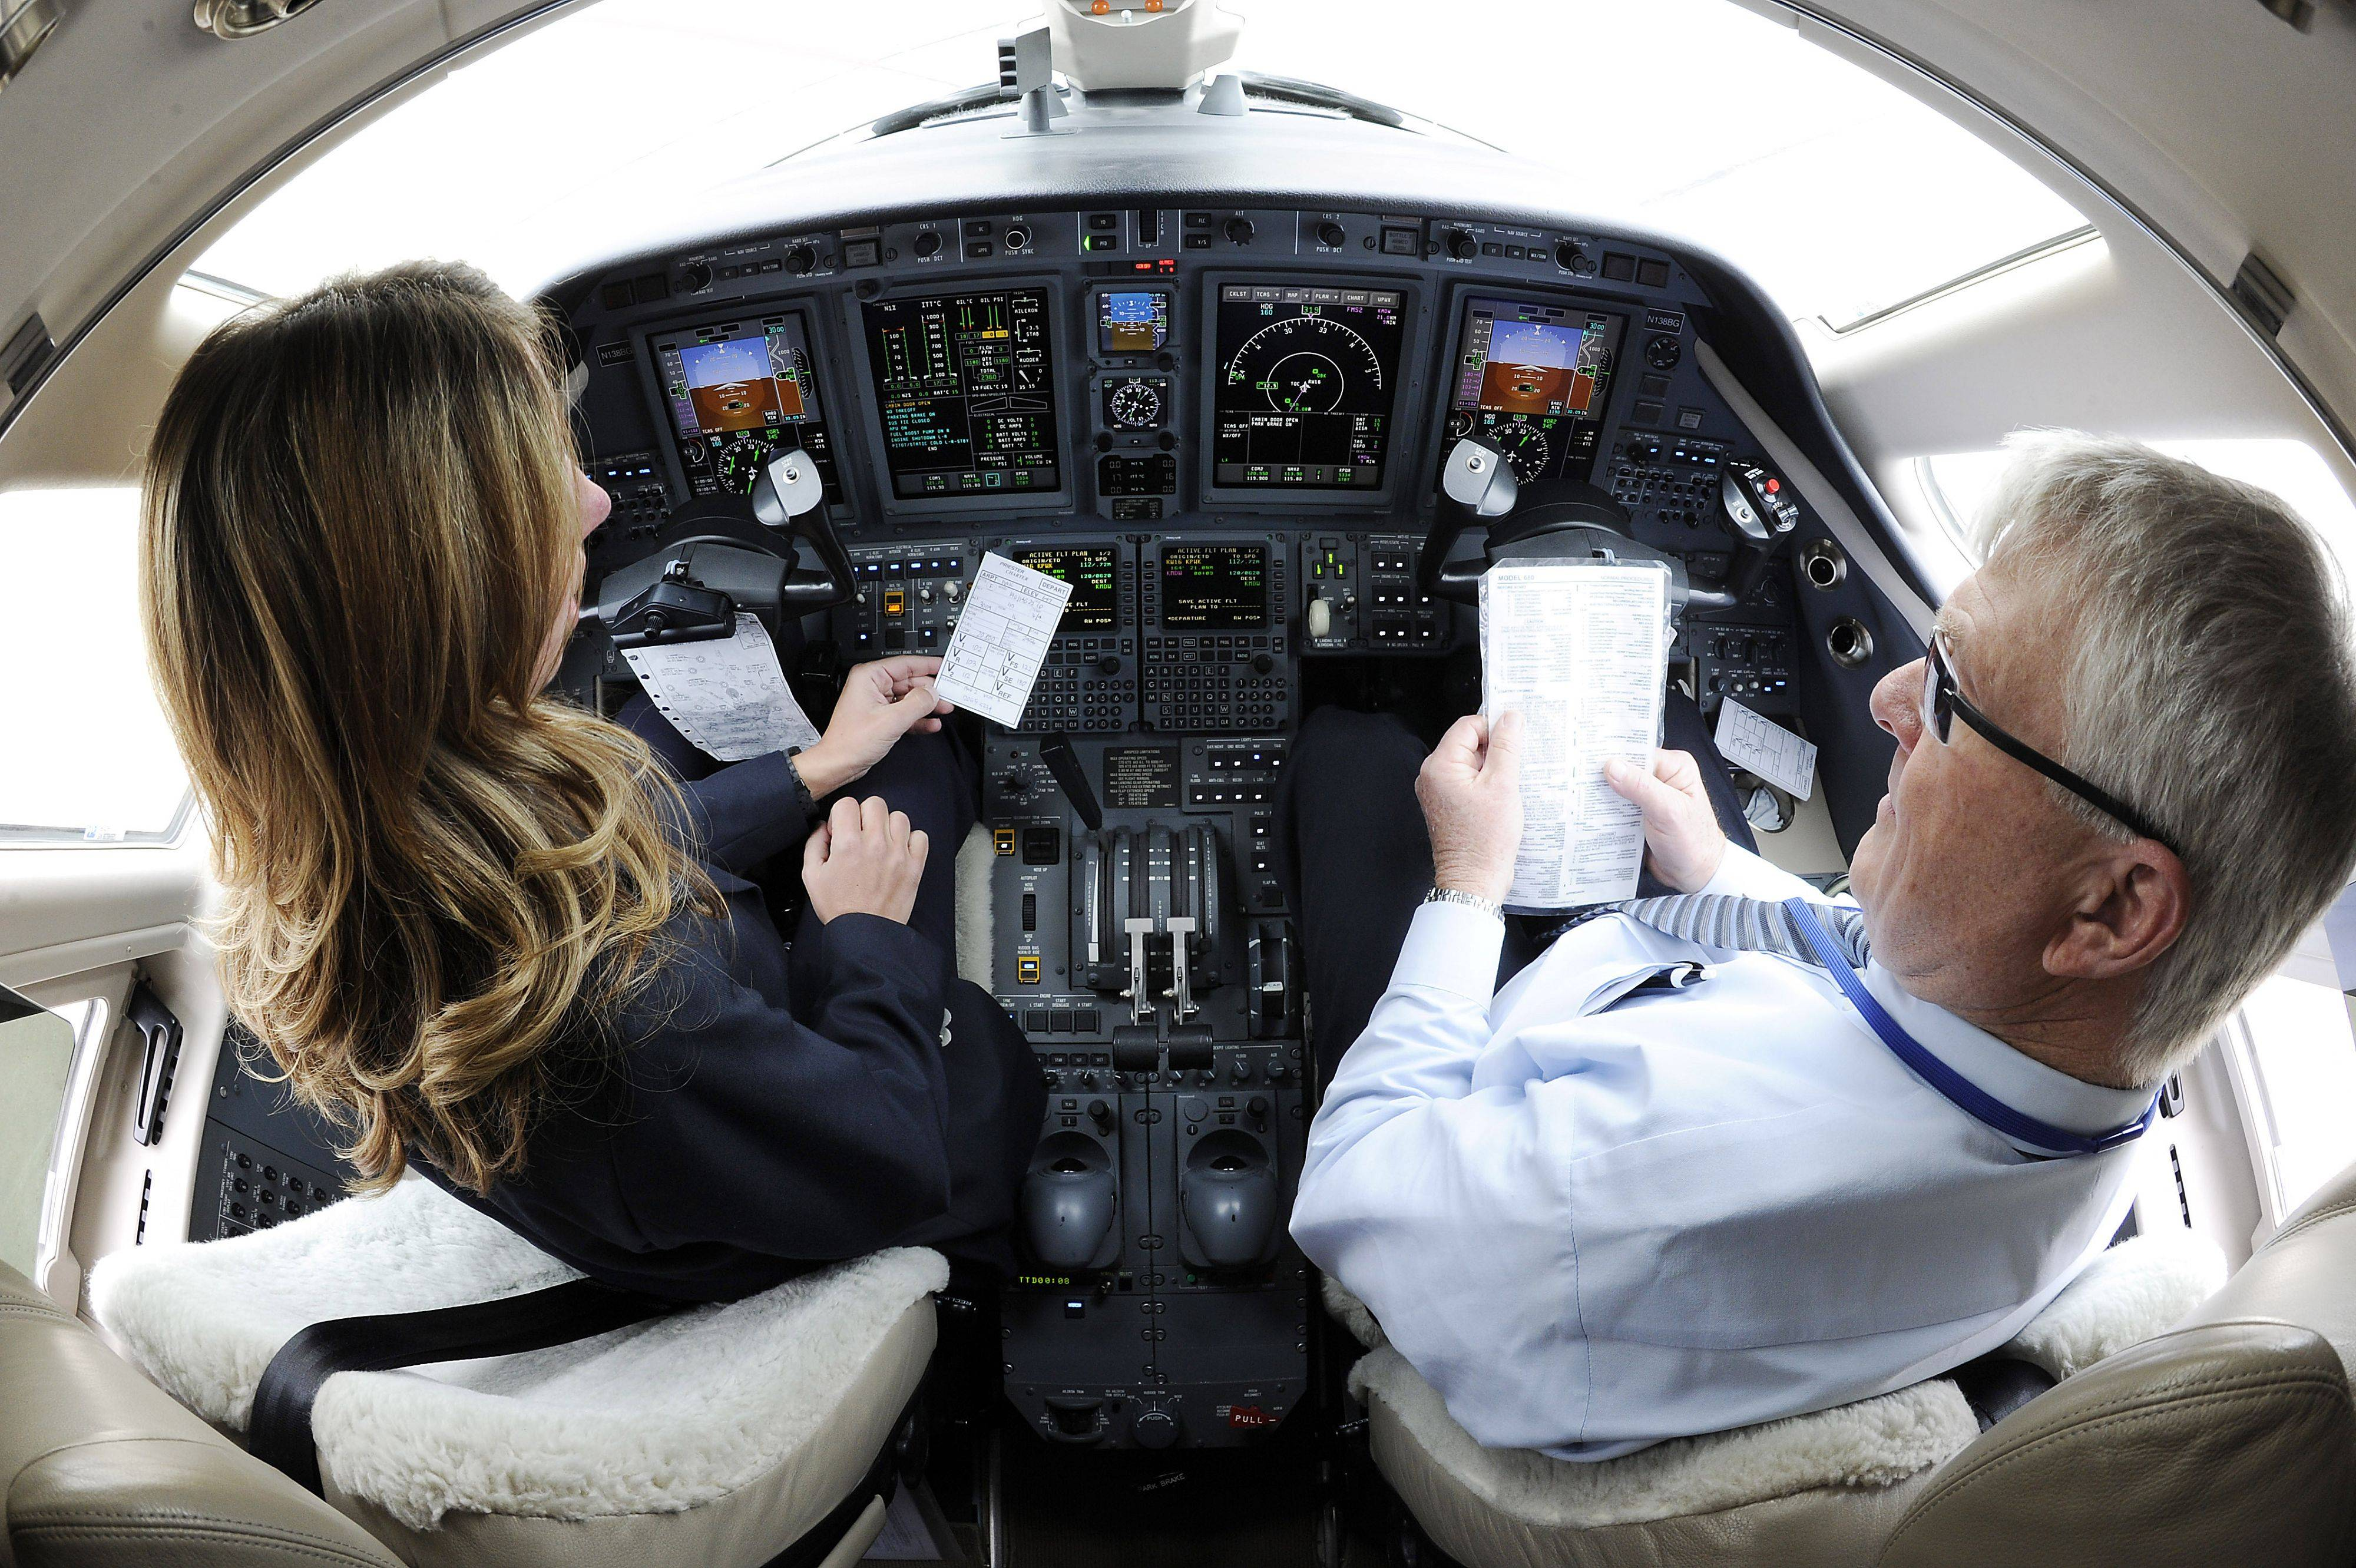 Wheeling's Pilot Amanda Sorenson of Priester Aviation gets ready for takeoff by checking all the controls in her Citation Sovereign aircraft with her fellow pilot Fred Bartlett of Burlington, Wisconsin before she leaves Chicago Executive Airport.